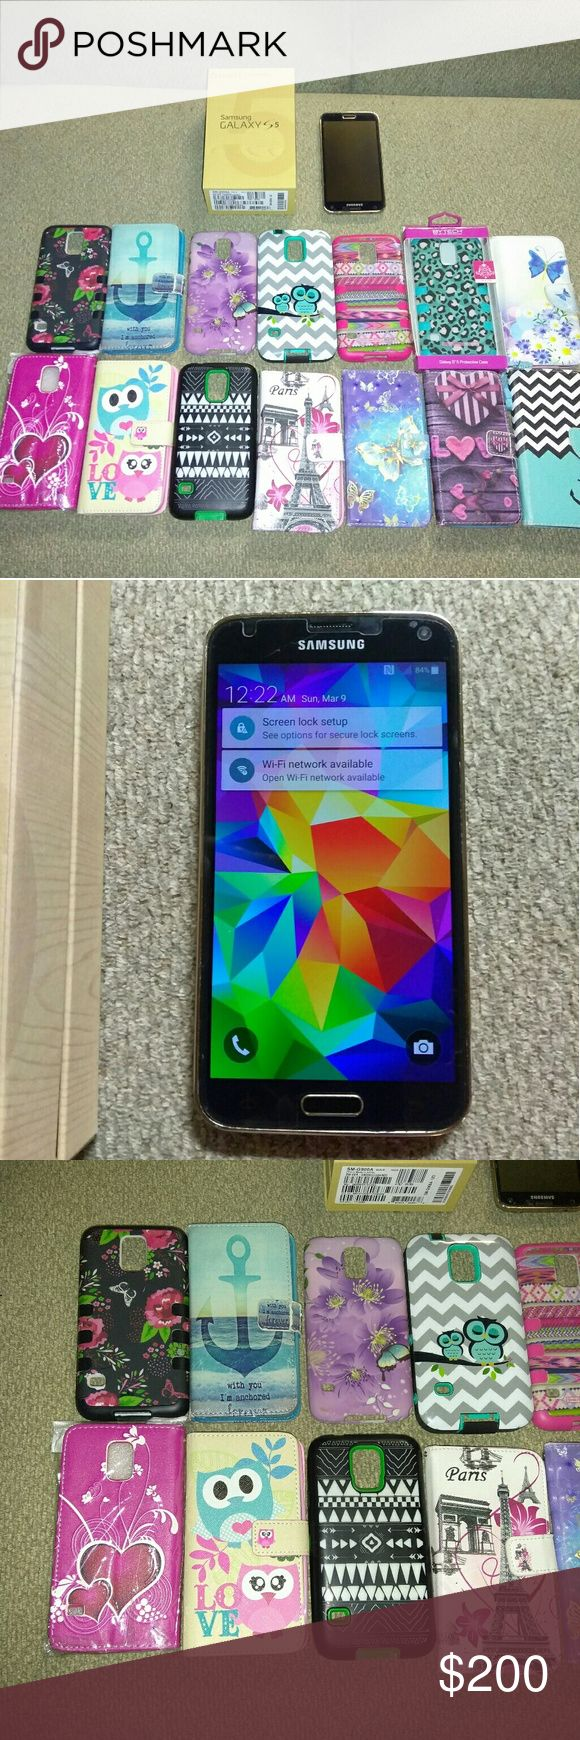 Samsung Galaxy S5 gold and 14 cases This phone is just like new.   The screen has a protector on it.. some minor mini dints on skin protector   but can't see them when the phone is on....AT&T..   unlocked.  Used it with straight talk after i unlocked it.   Still has a straight talk sim card it in.   Comes with 14 cases..  everyone of them are in perfect condition but one. The second one on the top row with the anchor.    No charger. But any Samsung  charger will work..    price is not frim…